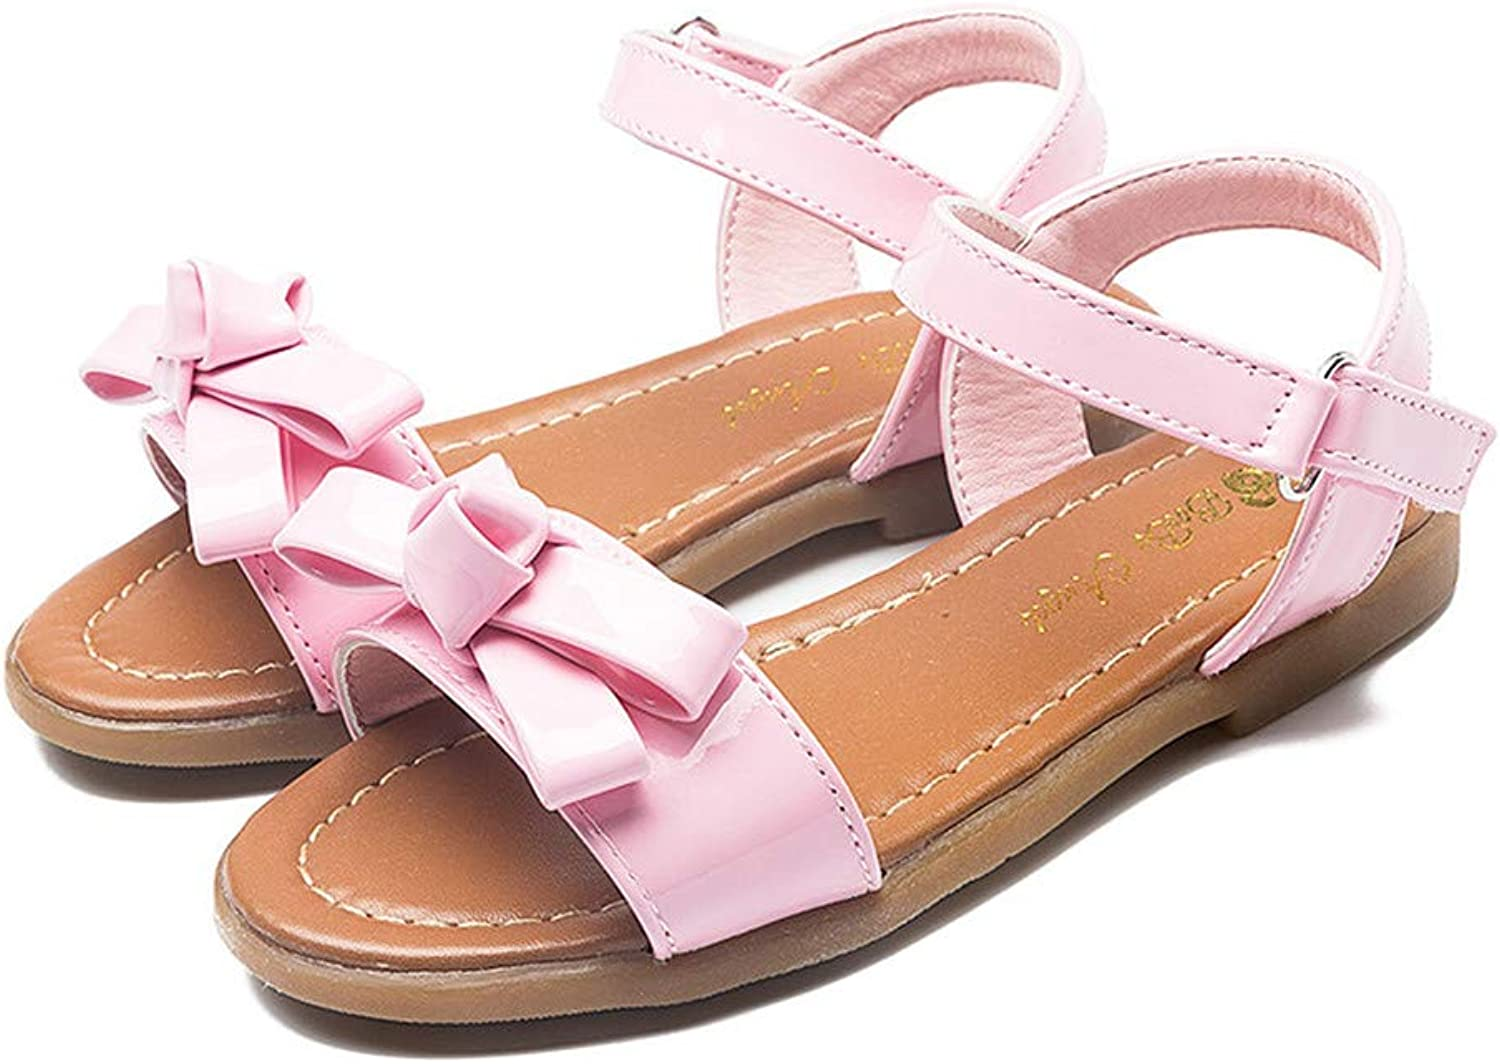 Dreamstar New Princess shoes Soft Bow Sandals Tendon Flat with Sandals